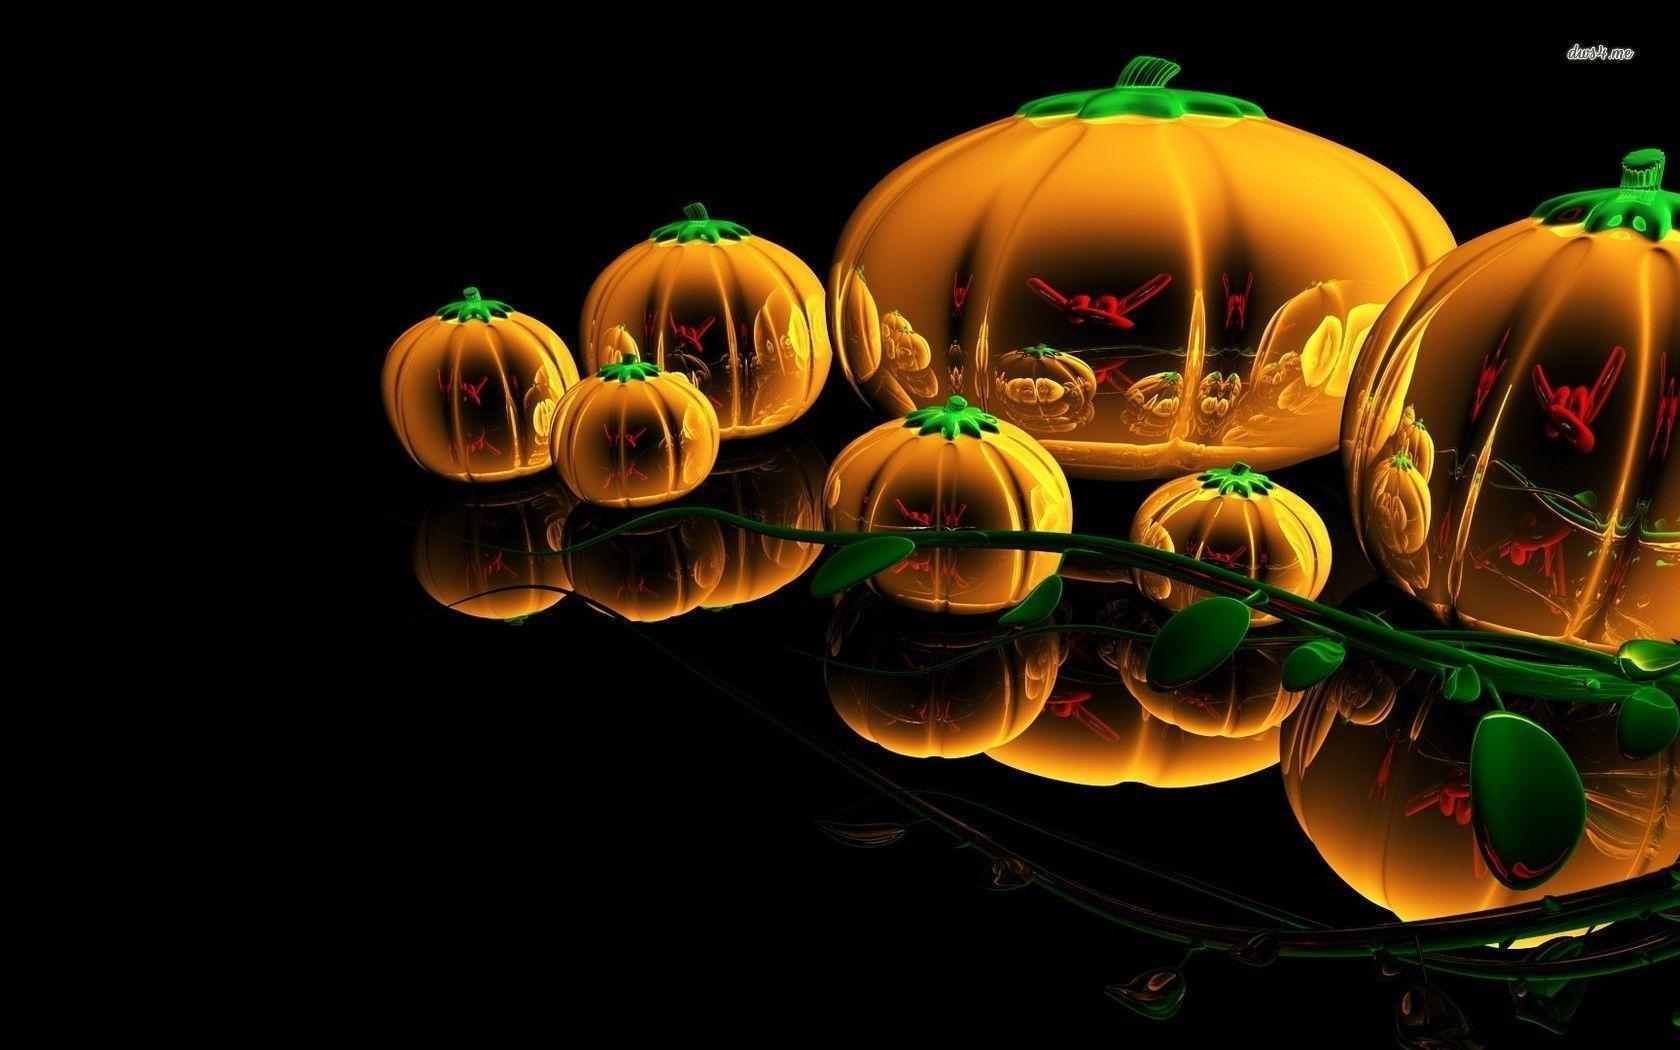 Halloween Pumpkin Wallpapers 126745 High Definition Wallpapers